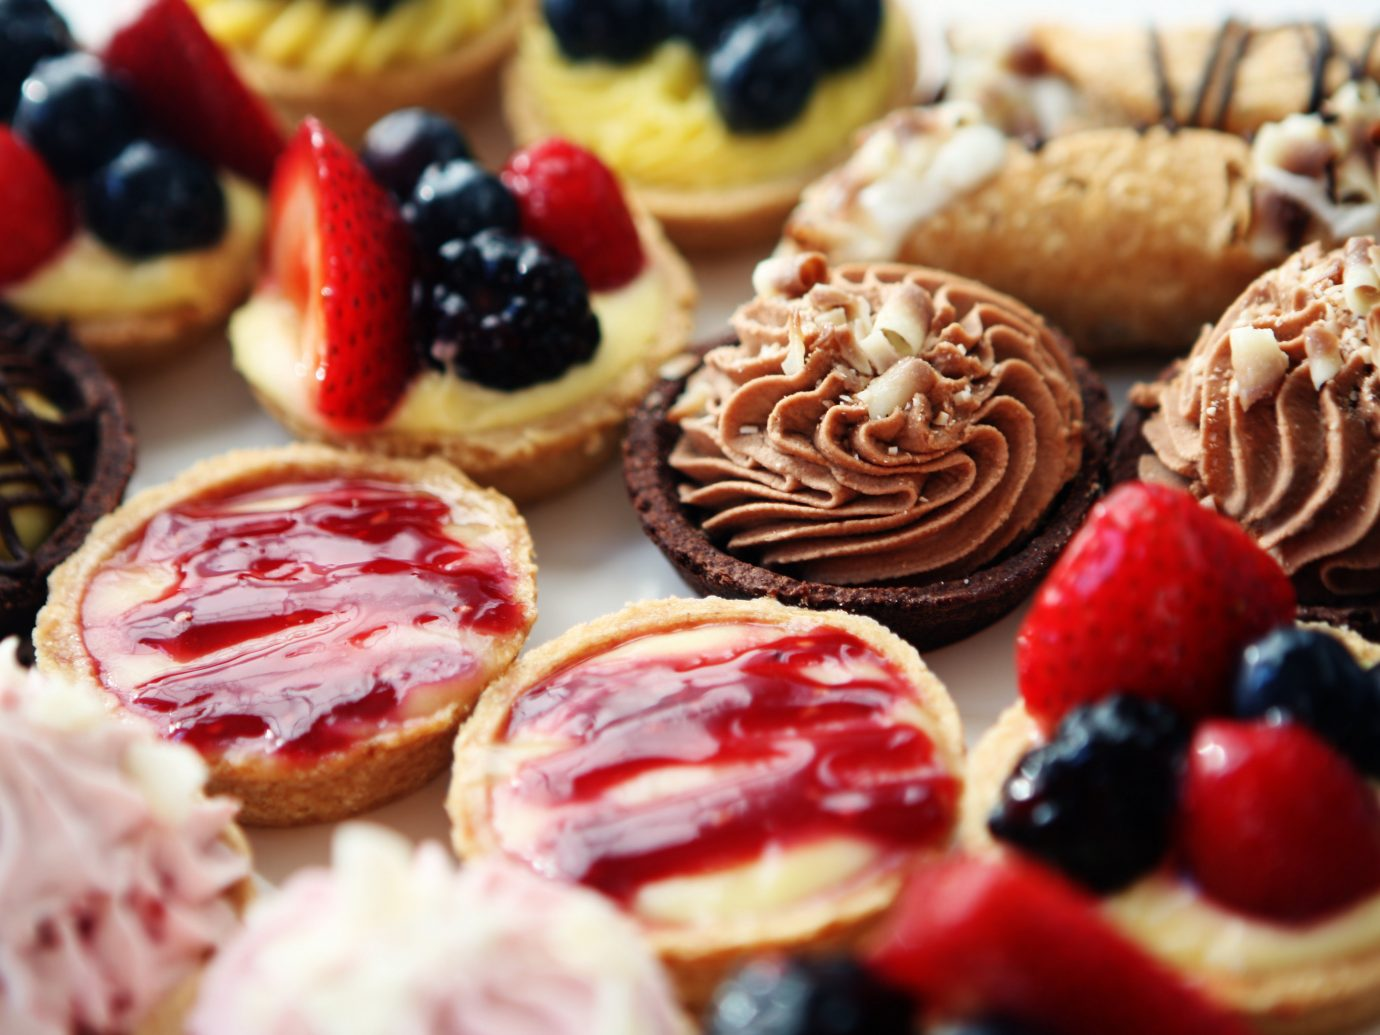 Food + Drink cake food dessert chocolate frutti di bosco piece pâtisserie decorated slice pastry produce fruit meal baked goods dish breakfast sweetness baking petit four danish pastry flavor close sliced baked